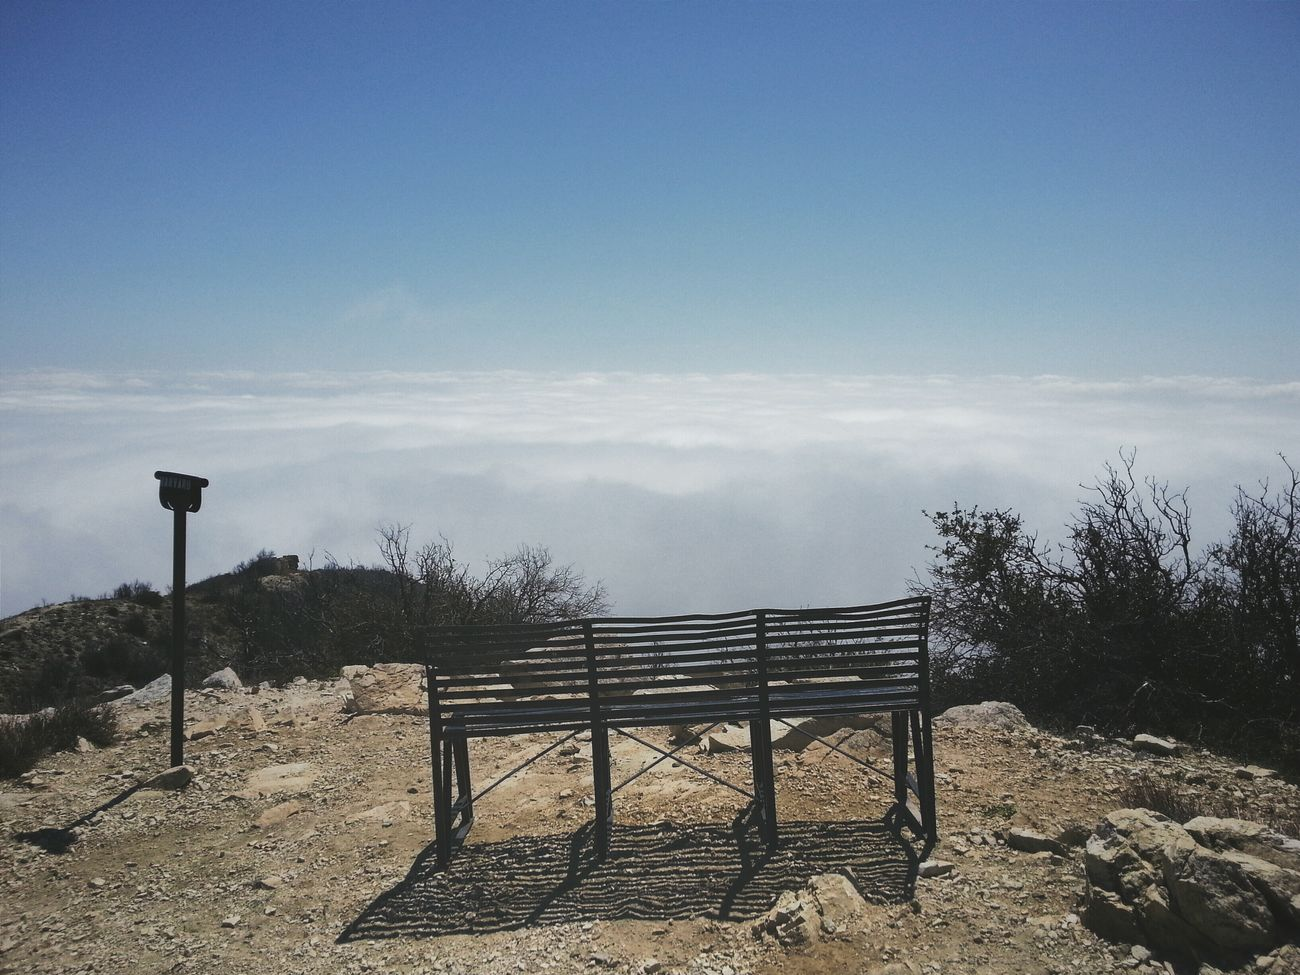 Row 1, Seat 1. Mount Lowe, Summit. California Landscape Nature Hiking